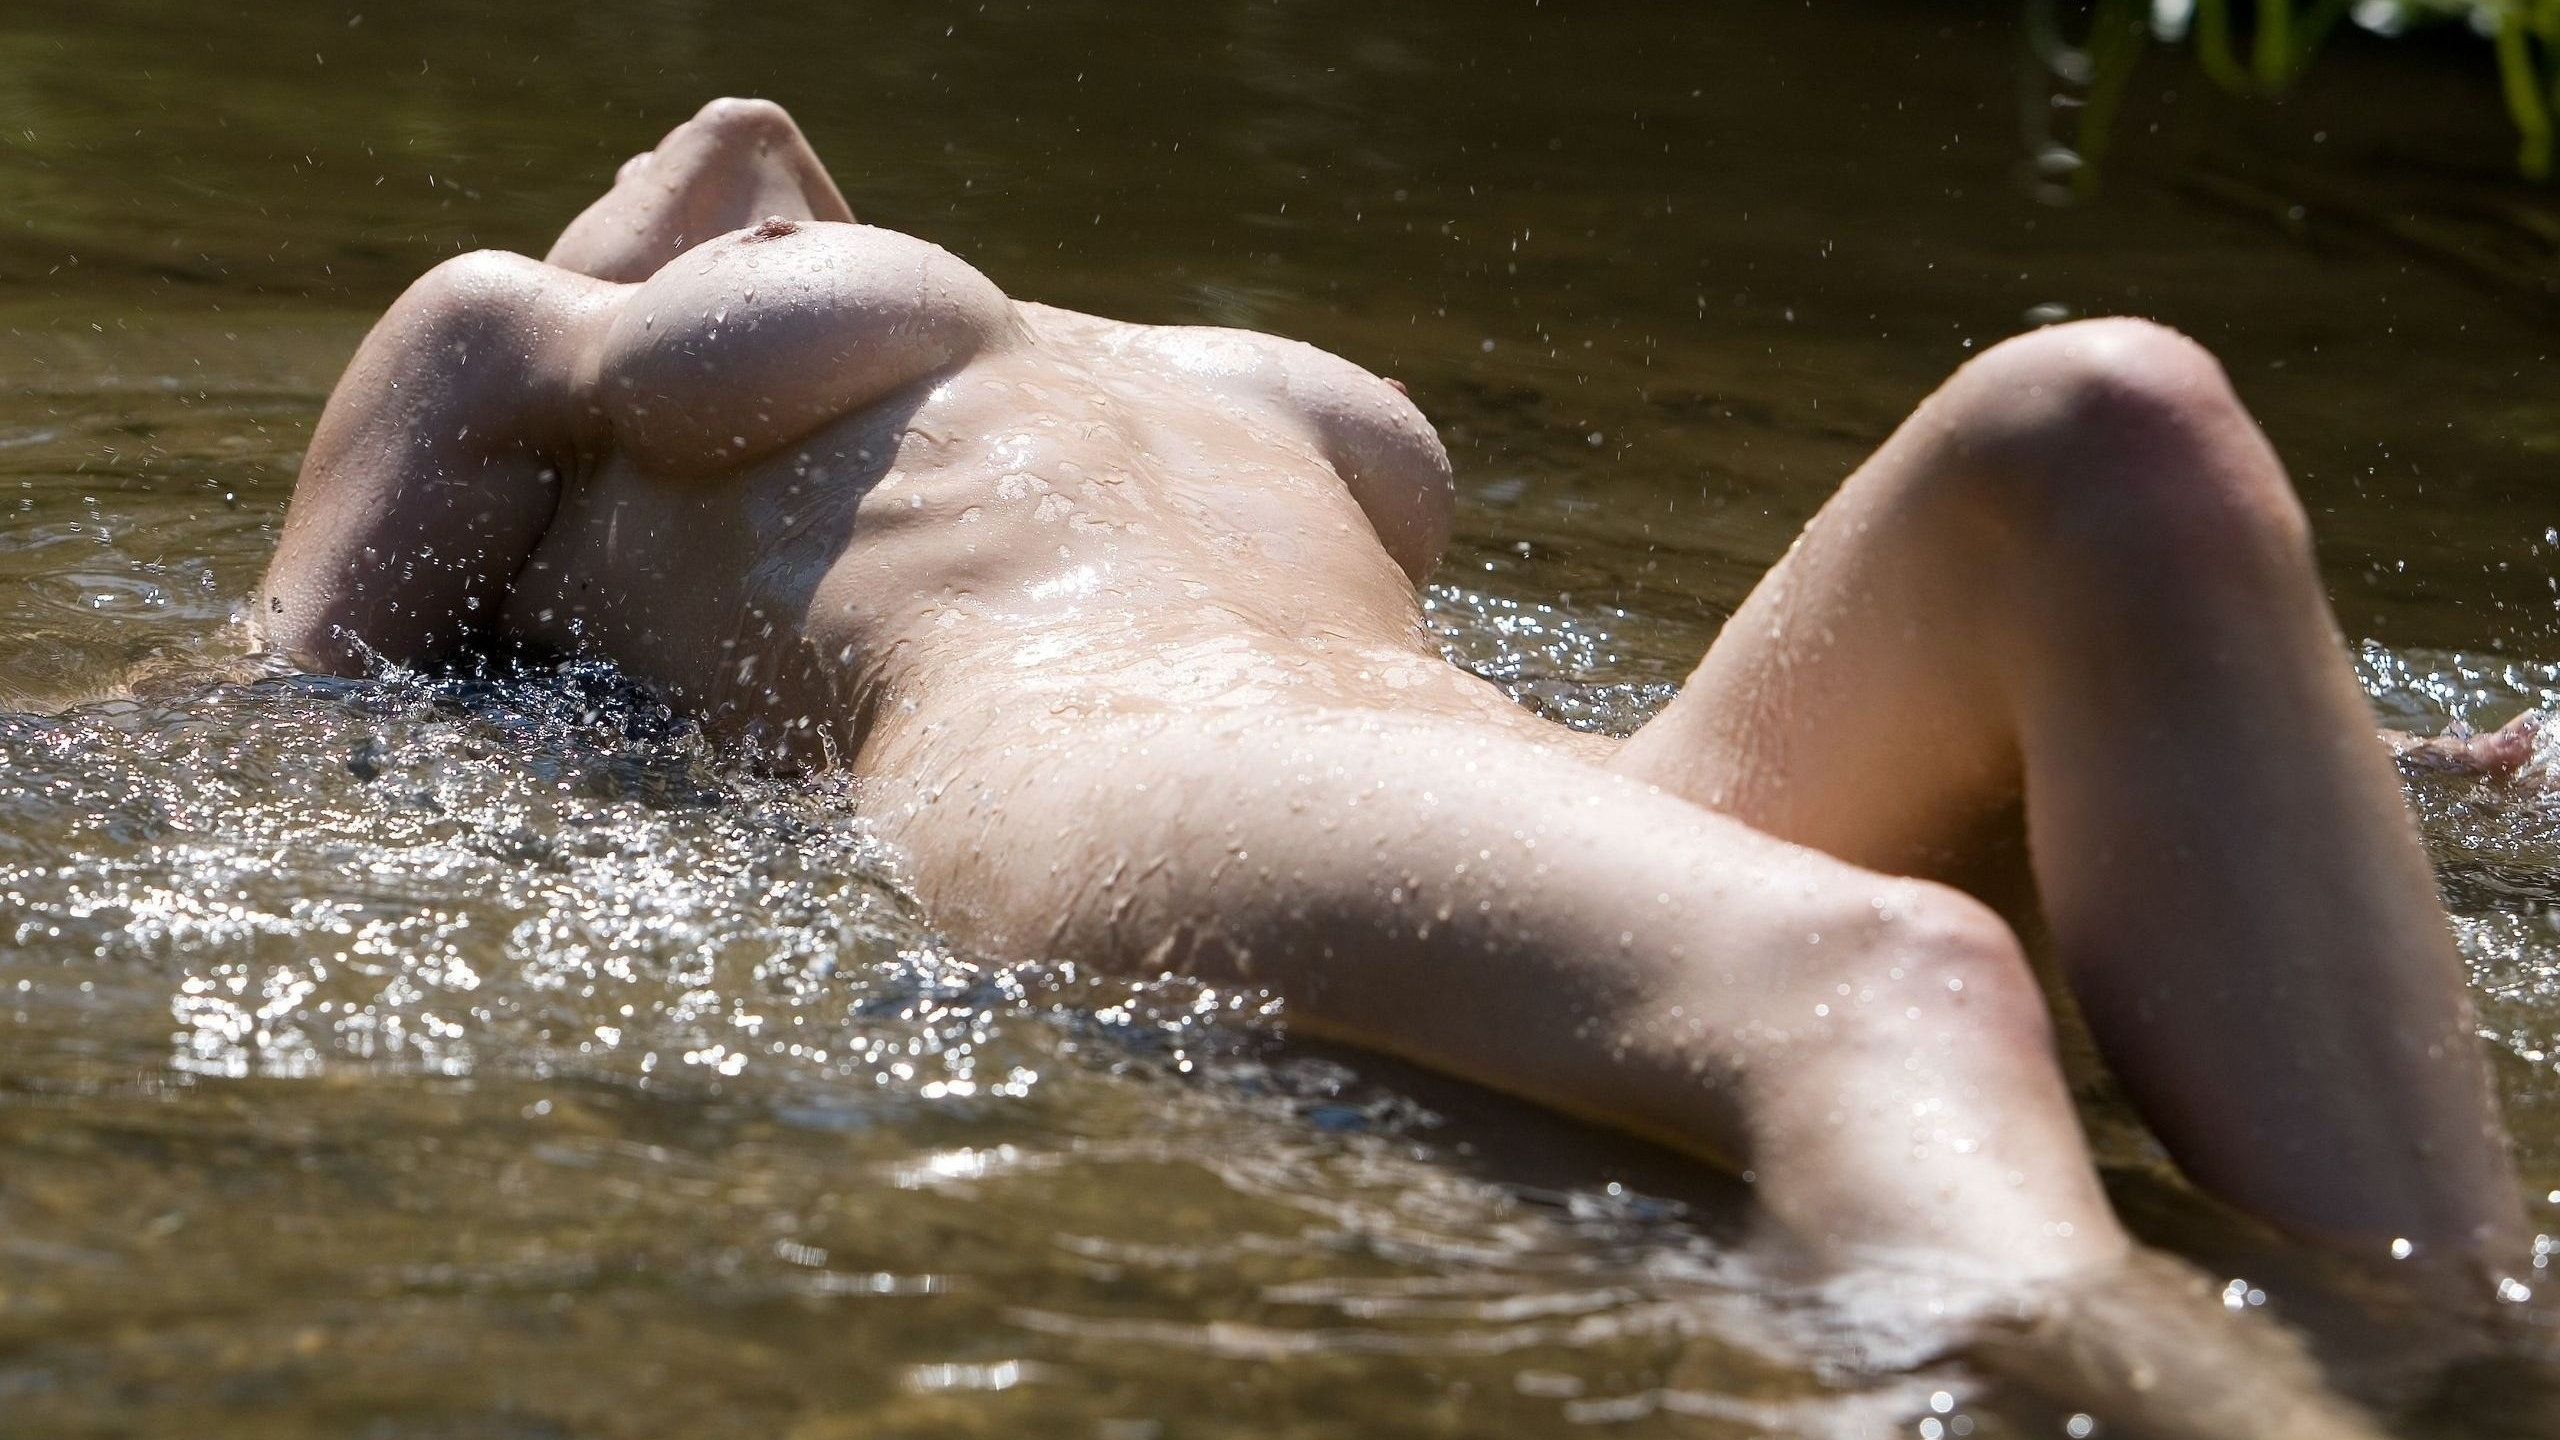 Nude on the water, malayalam cute girl naked